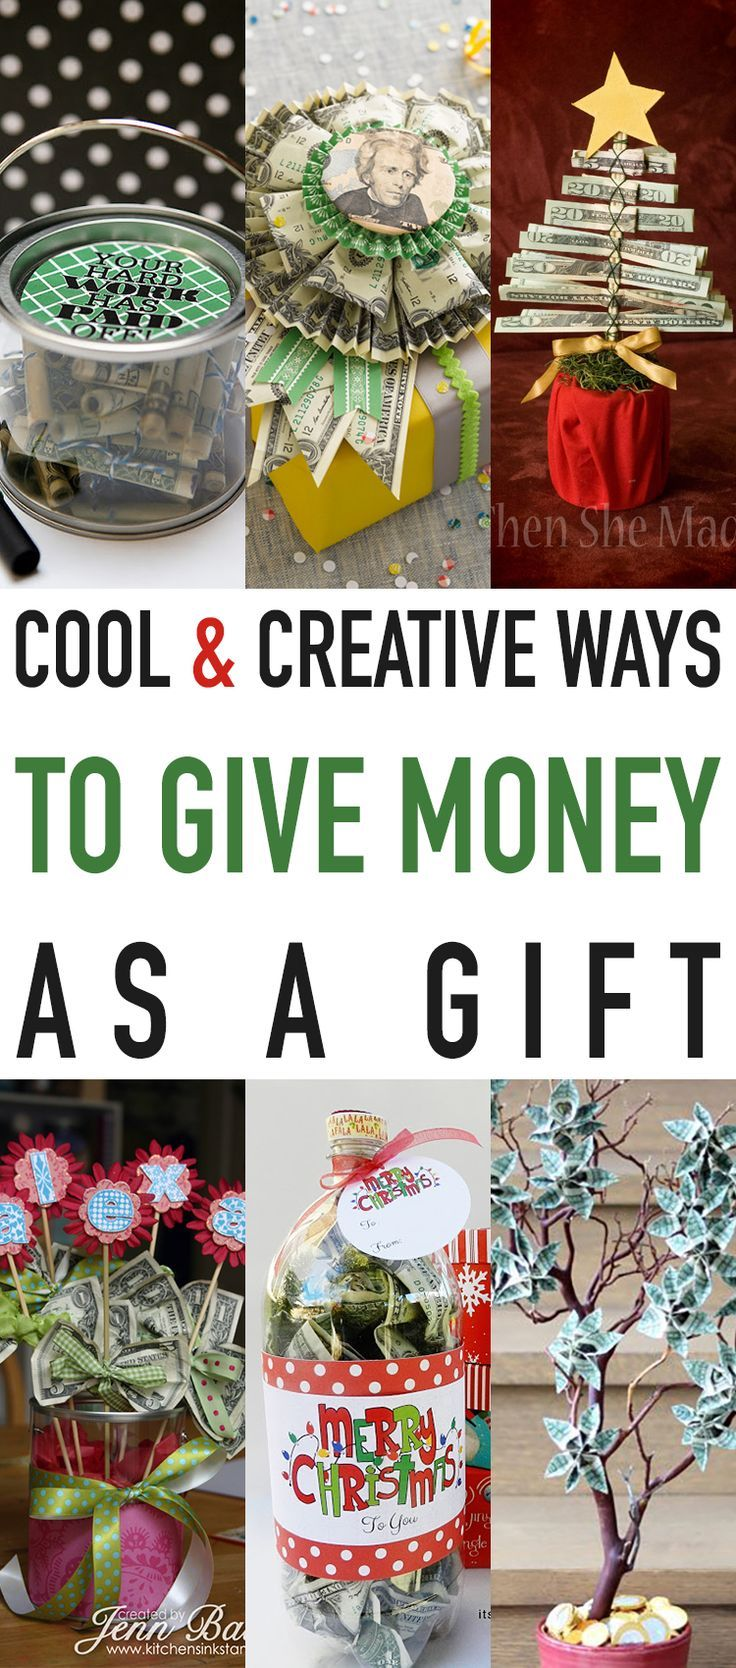 Silly Gifts For Christmas